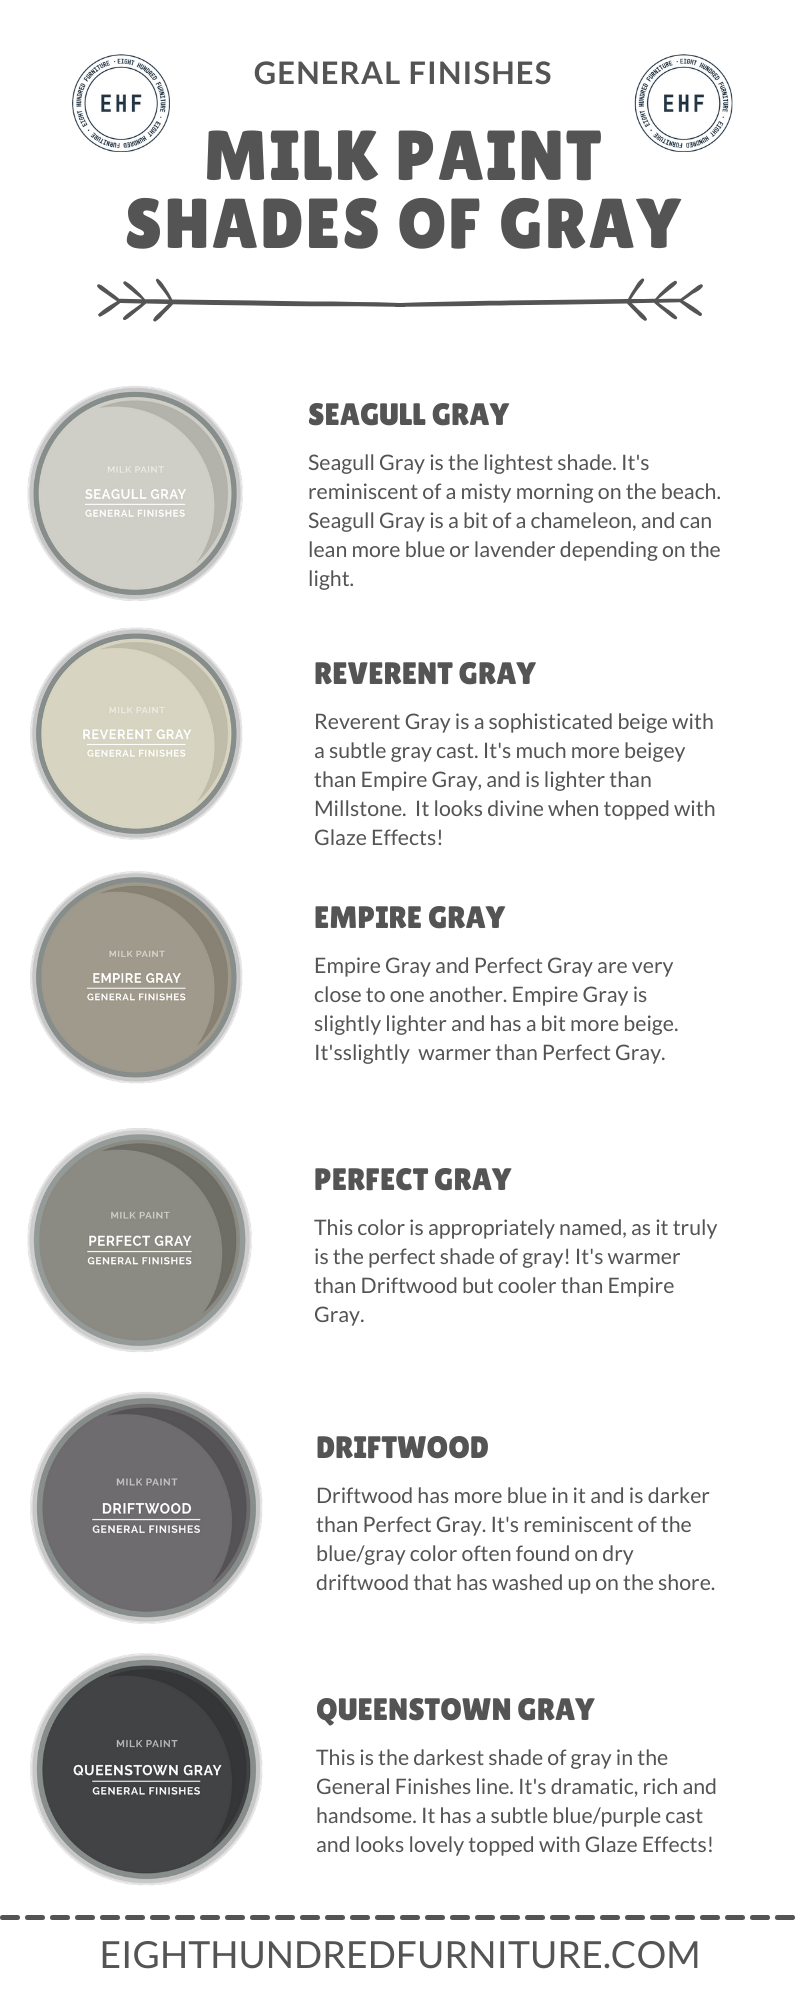 General Finishes Milk Paint shades of gray